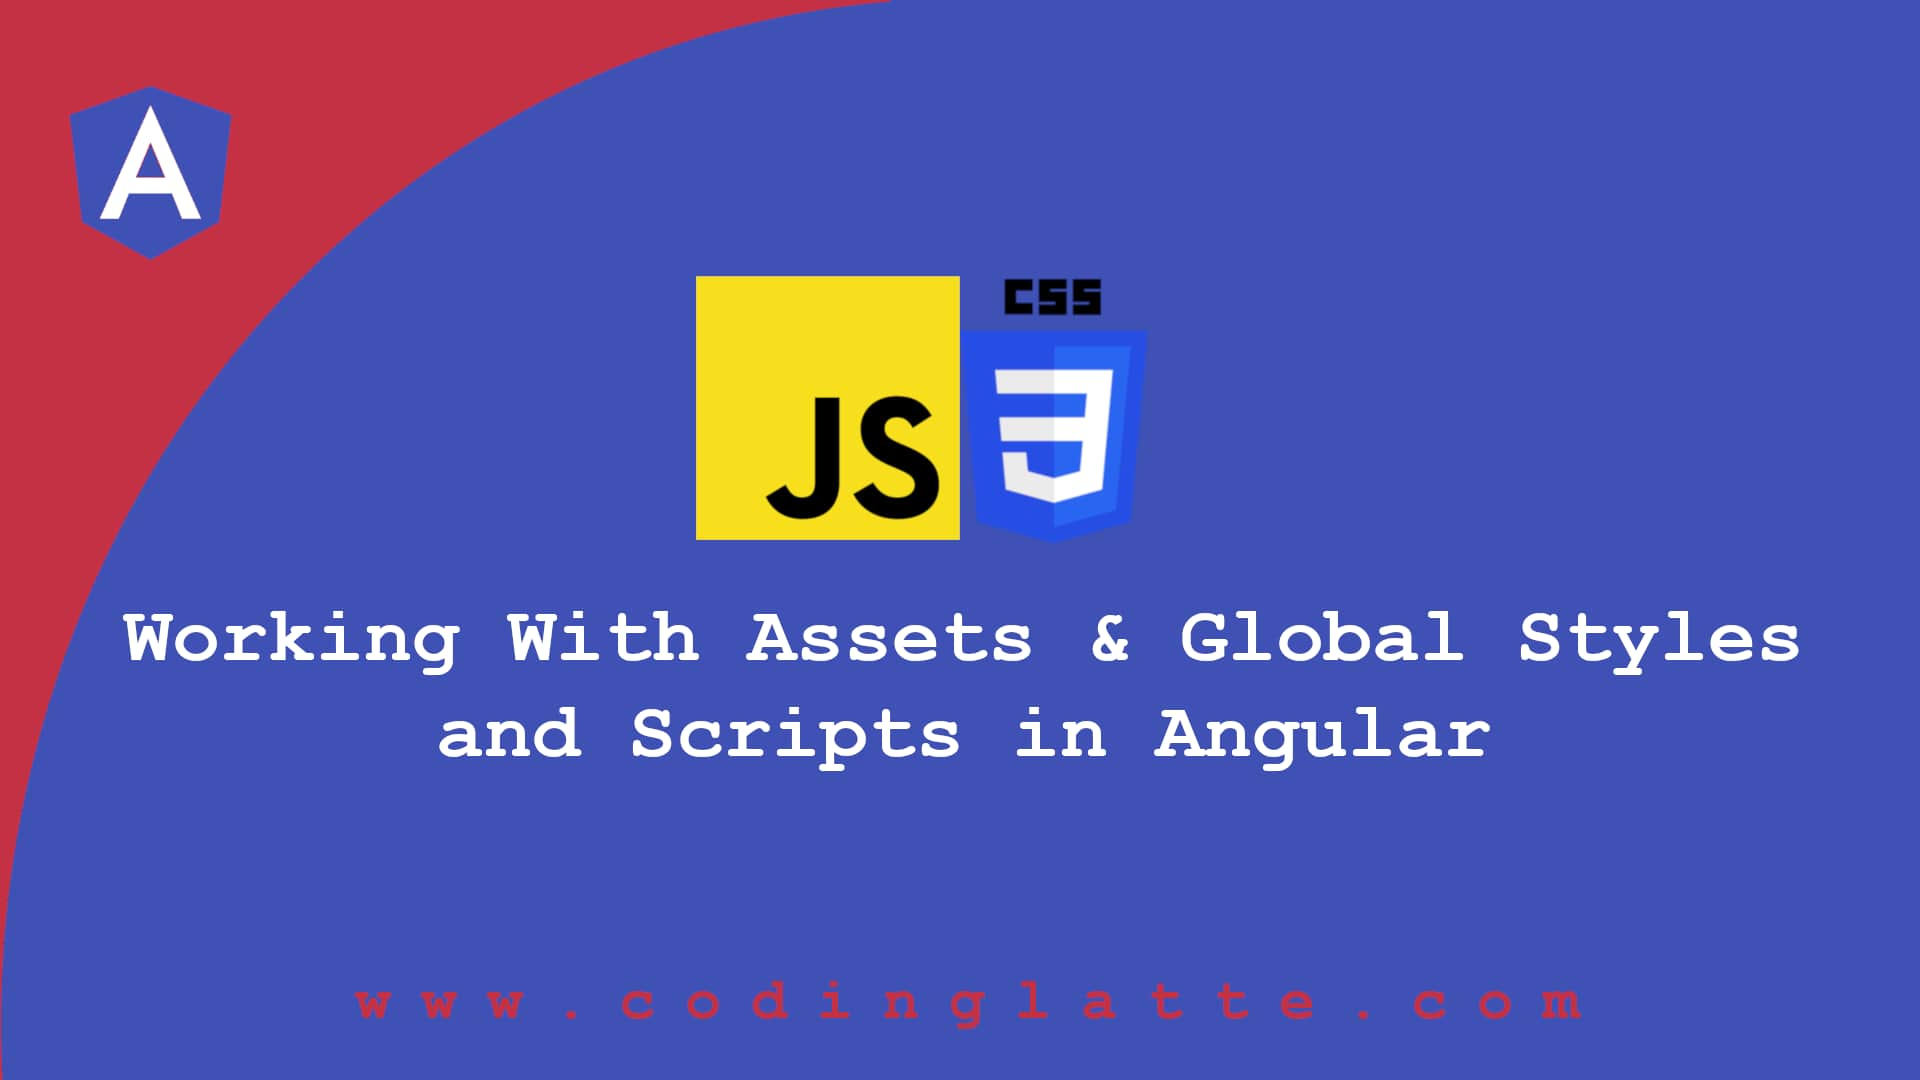 Working With Assets and Global Styles and Scripts in Angular